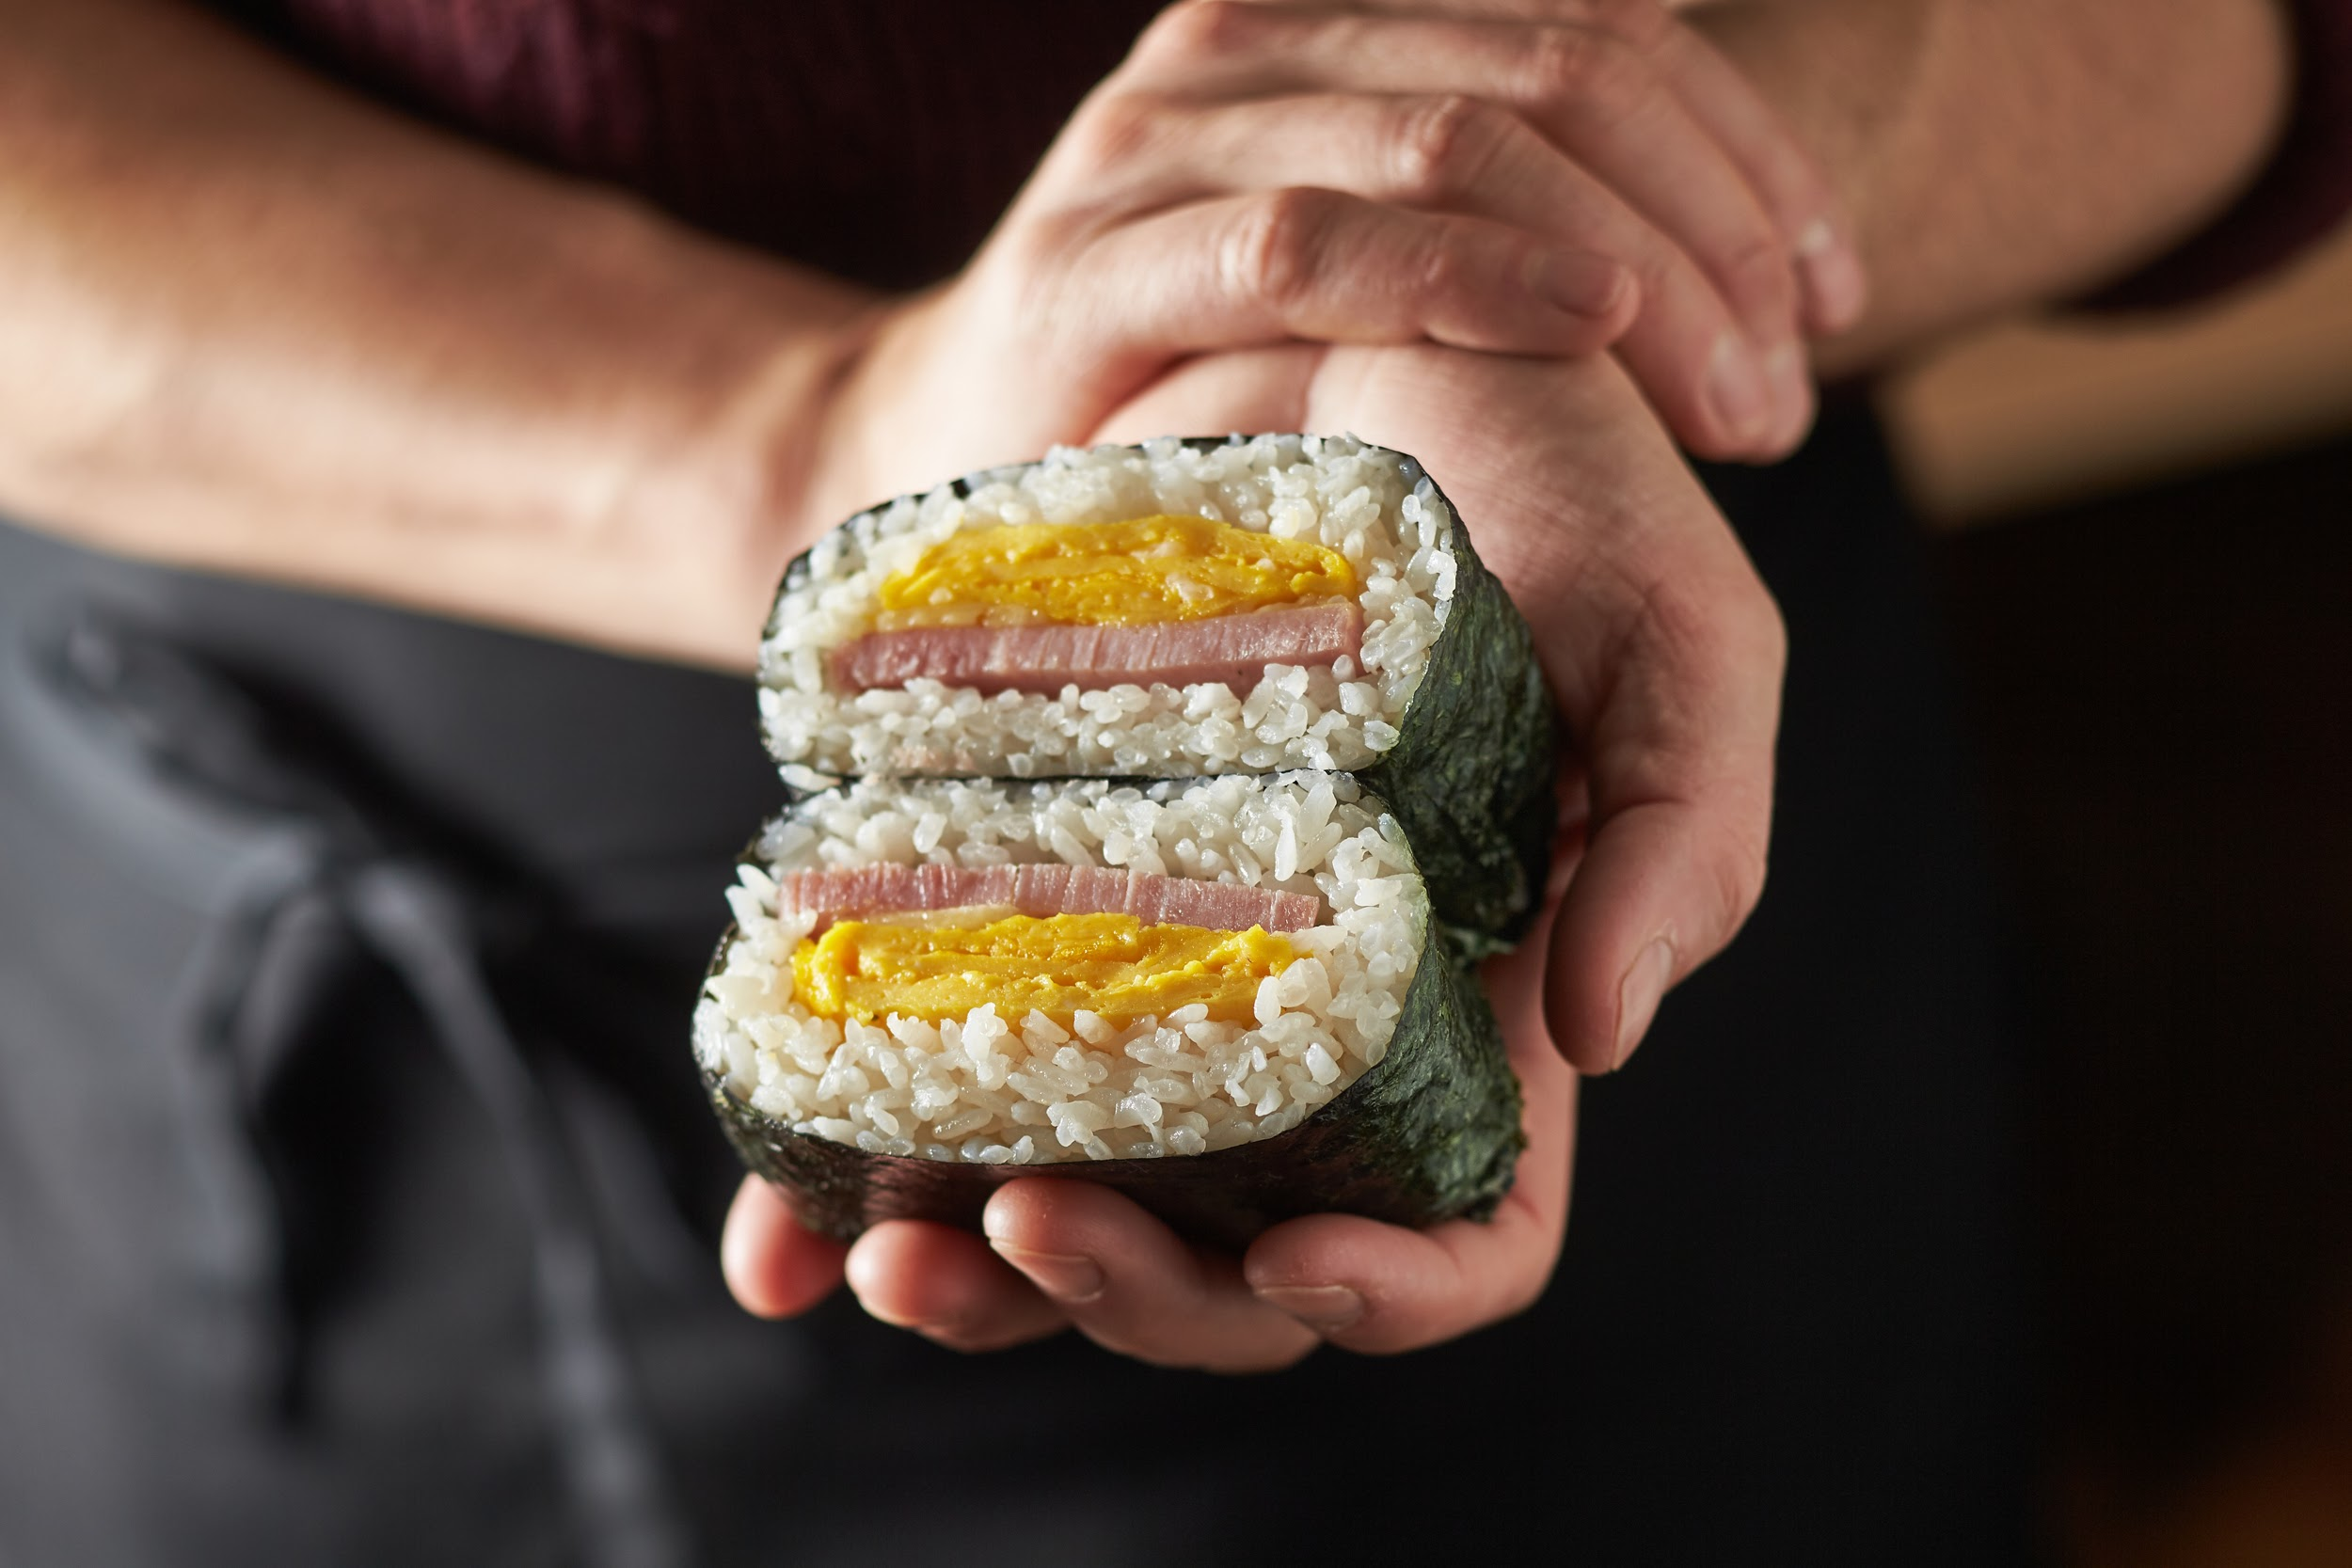 A hand holds a seaweed-wrapped ball of rice filled with ham and egg